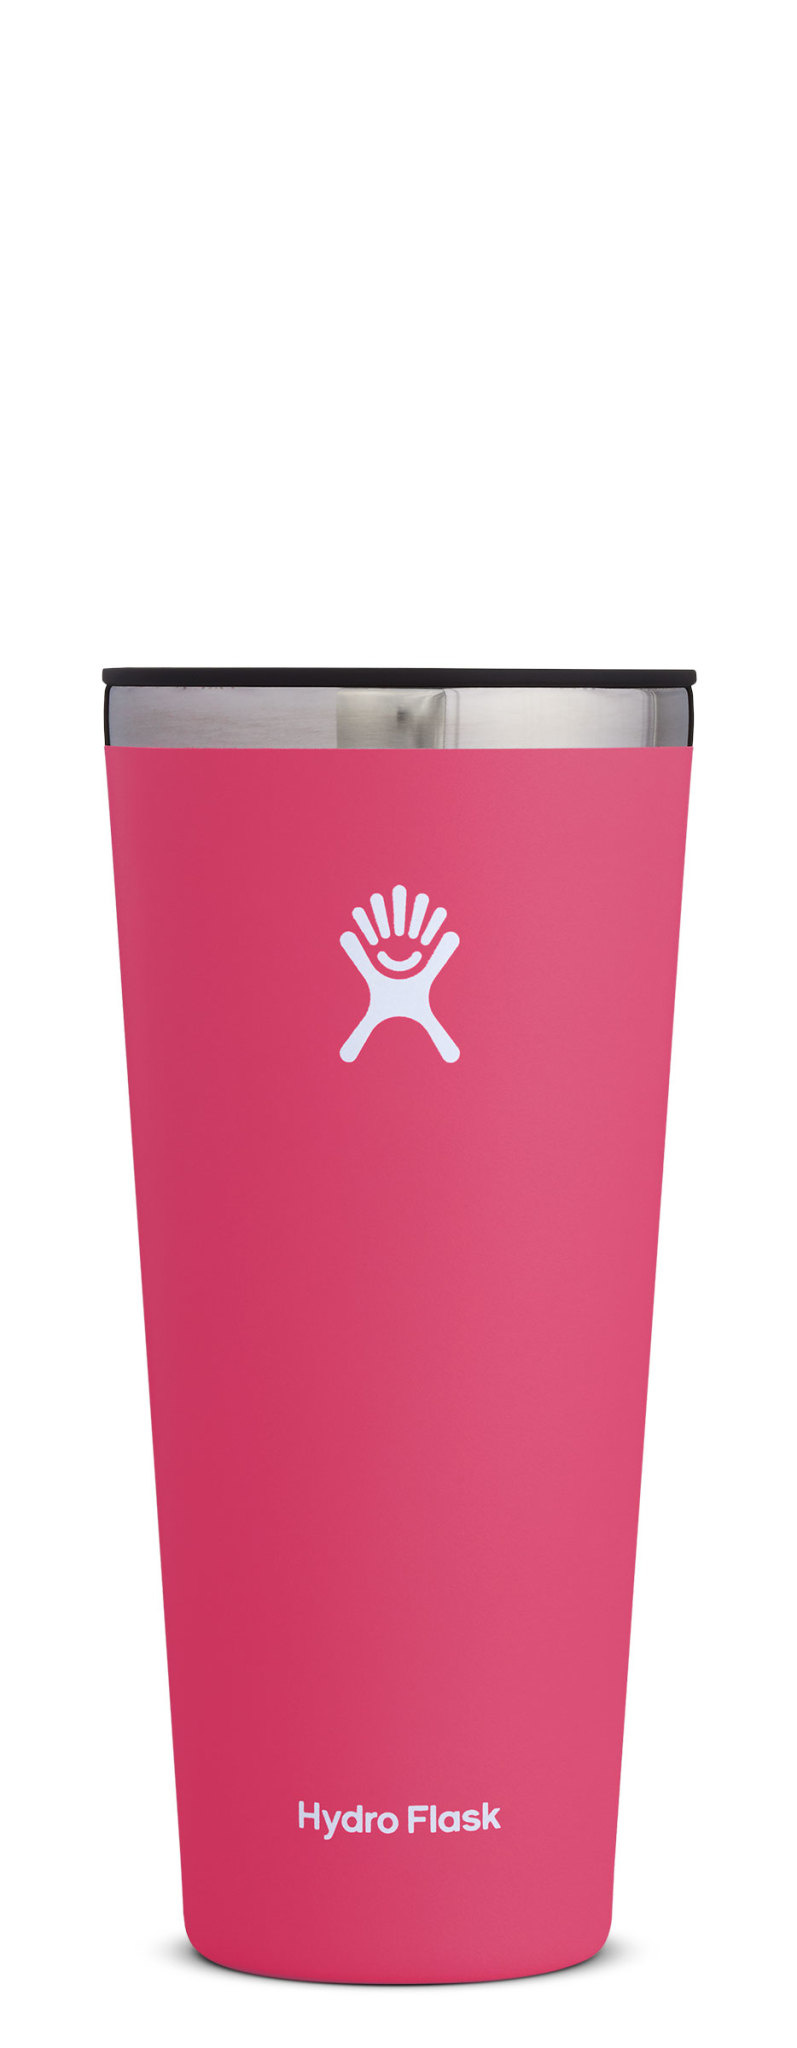 Hydro Flask 32oz Tumbler-1